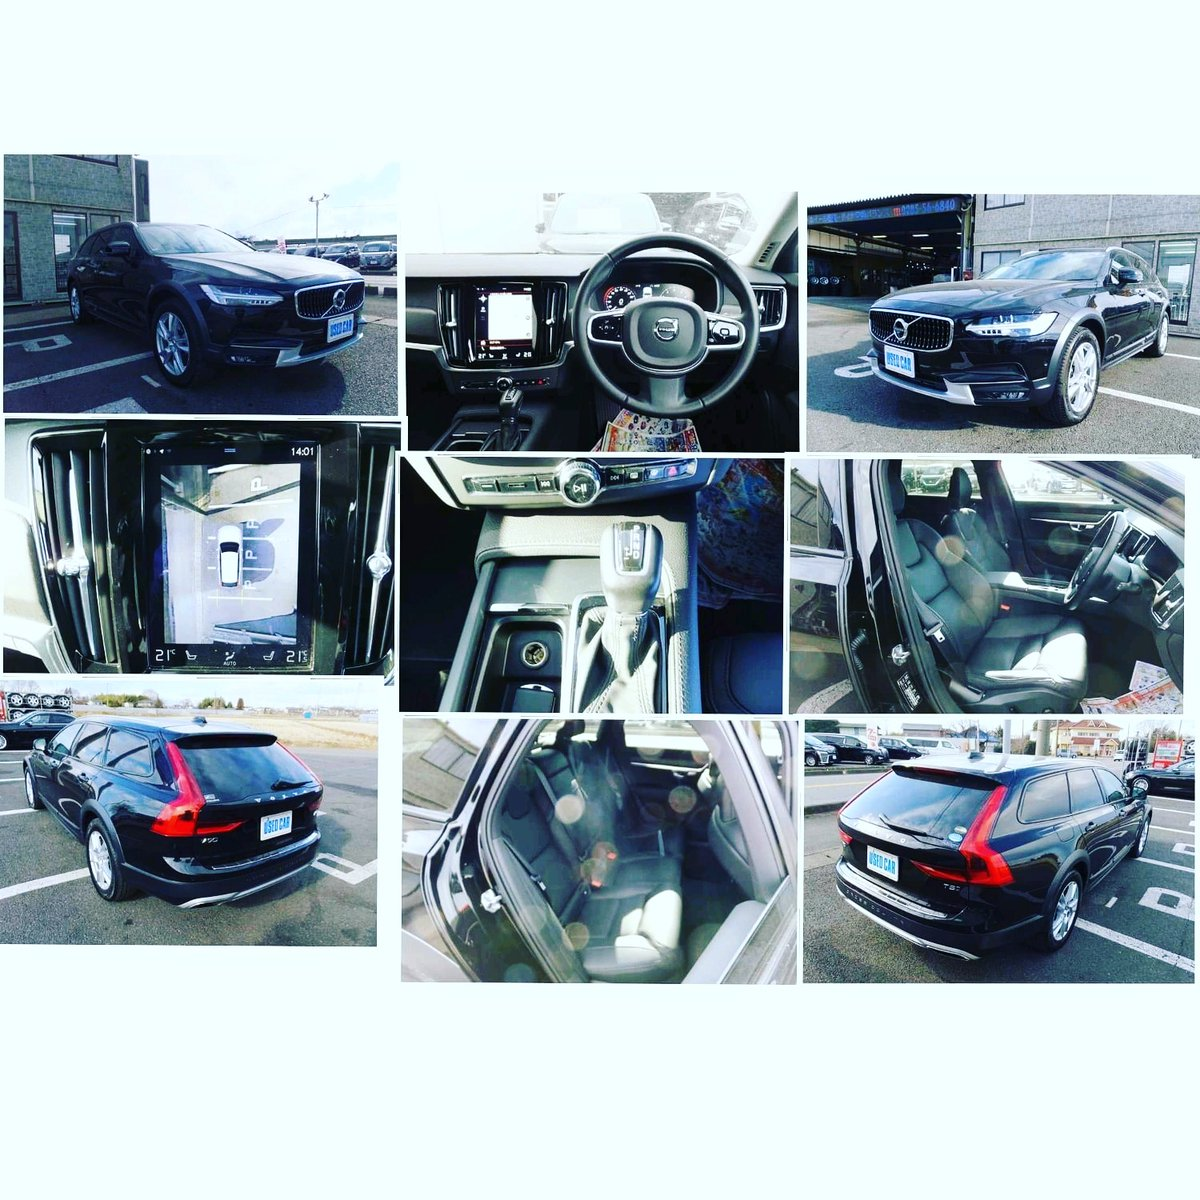 #Volvo V90,#Import Volvo #V90 @3.7m budget all cost inclusive(Duty,MVR,Clearance) Engine:2000cc, YOM:2017 Fuel:Petrol, Mileage:24500km, Drive:2WD, Black Leather interioir, Power Adjustable Seats ETC(Electronic Stability Control), Keyless Entry#wilsonsaffranautos +254725446971 pic.twitter.com/fnuRxyT1zK